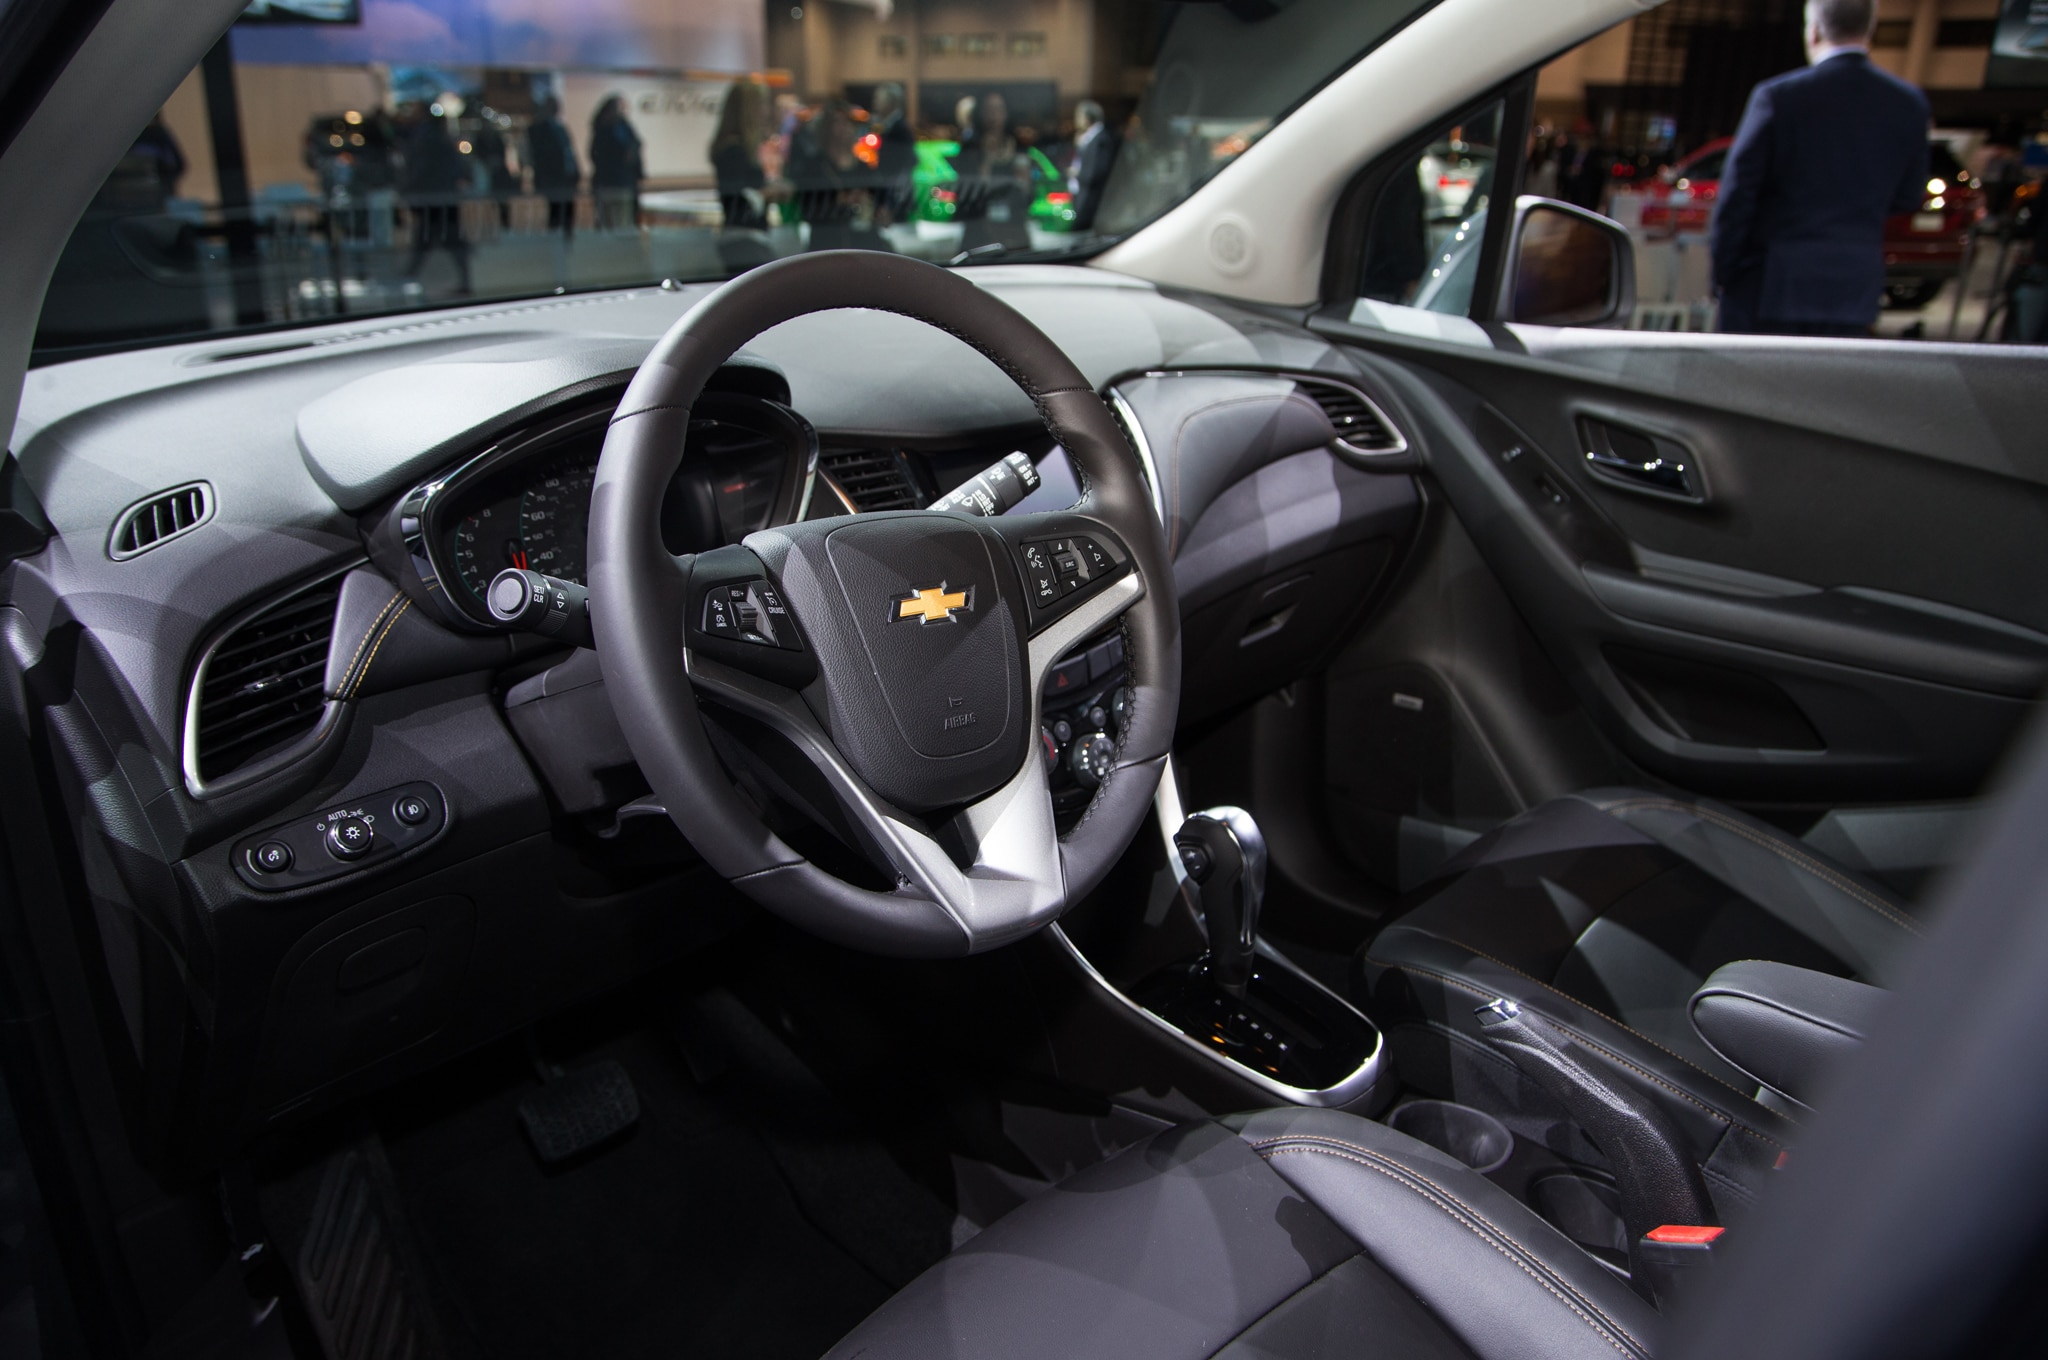 2017 Chevrolet Silverado 1500 Msrp >> 2017 Chevrolet Trax Gets a Fresh Face, New Safety Gear